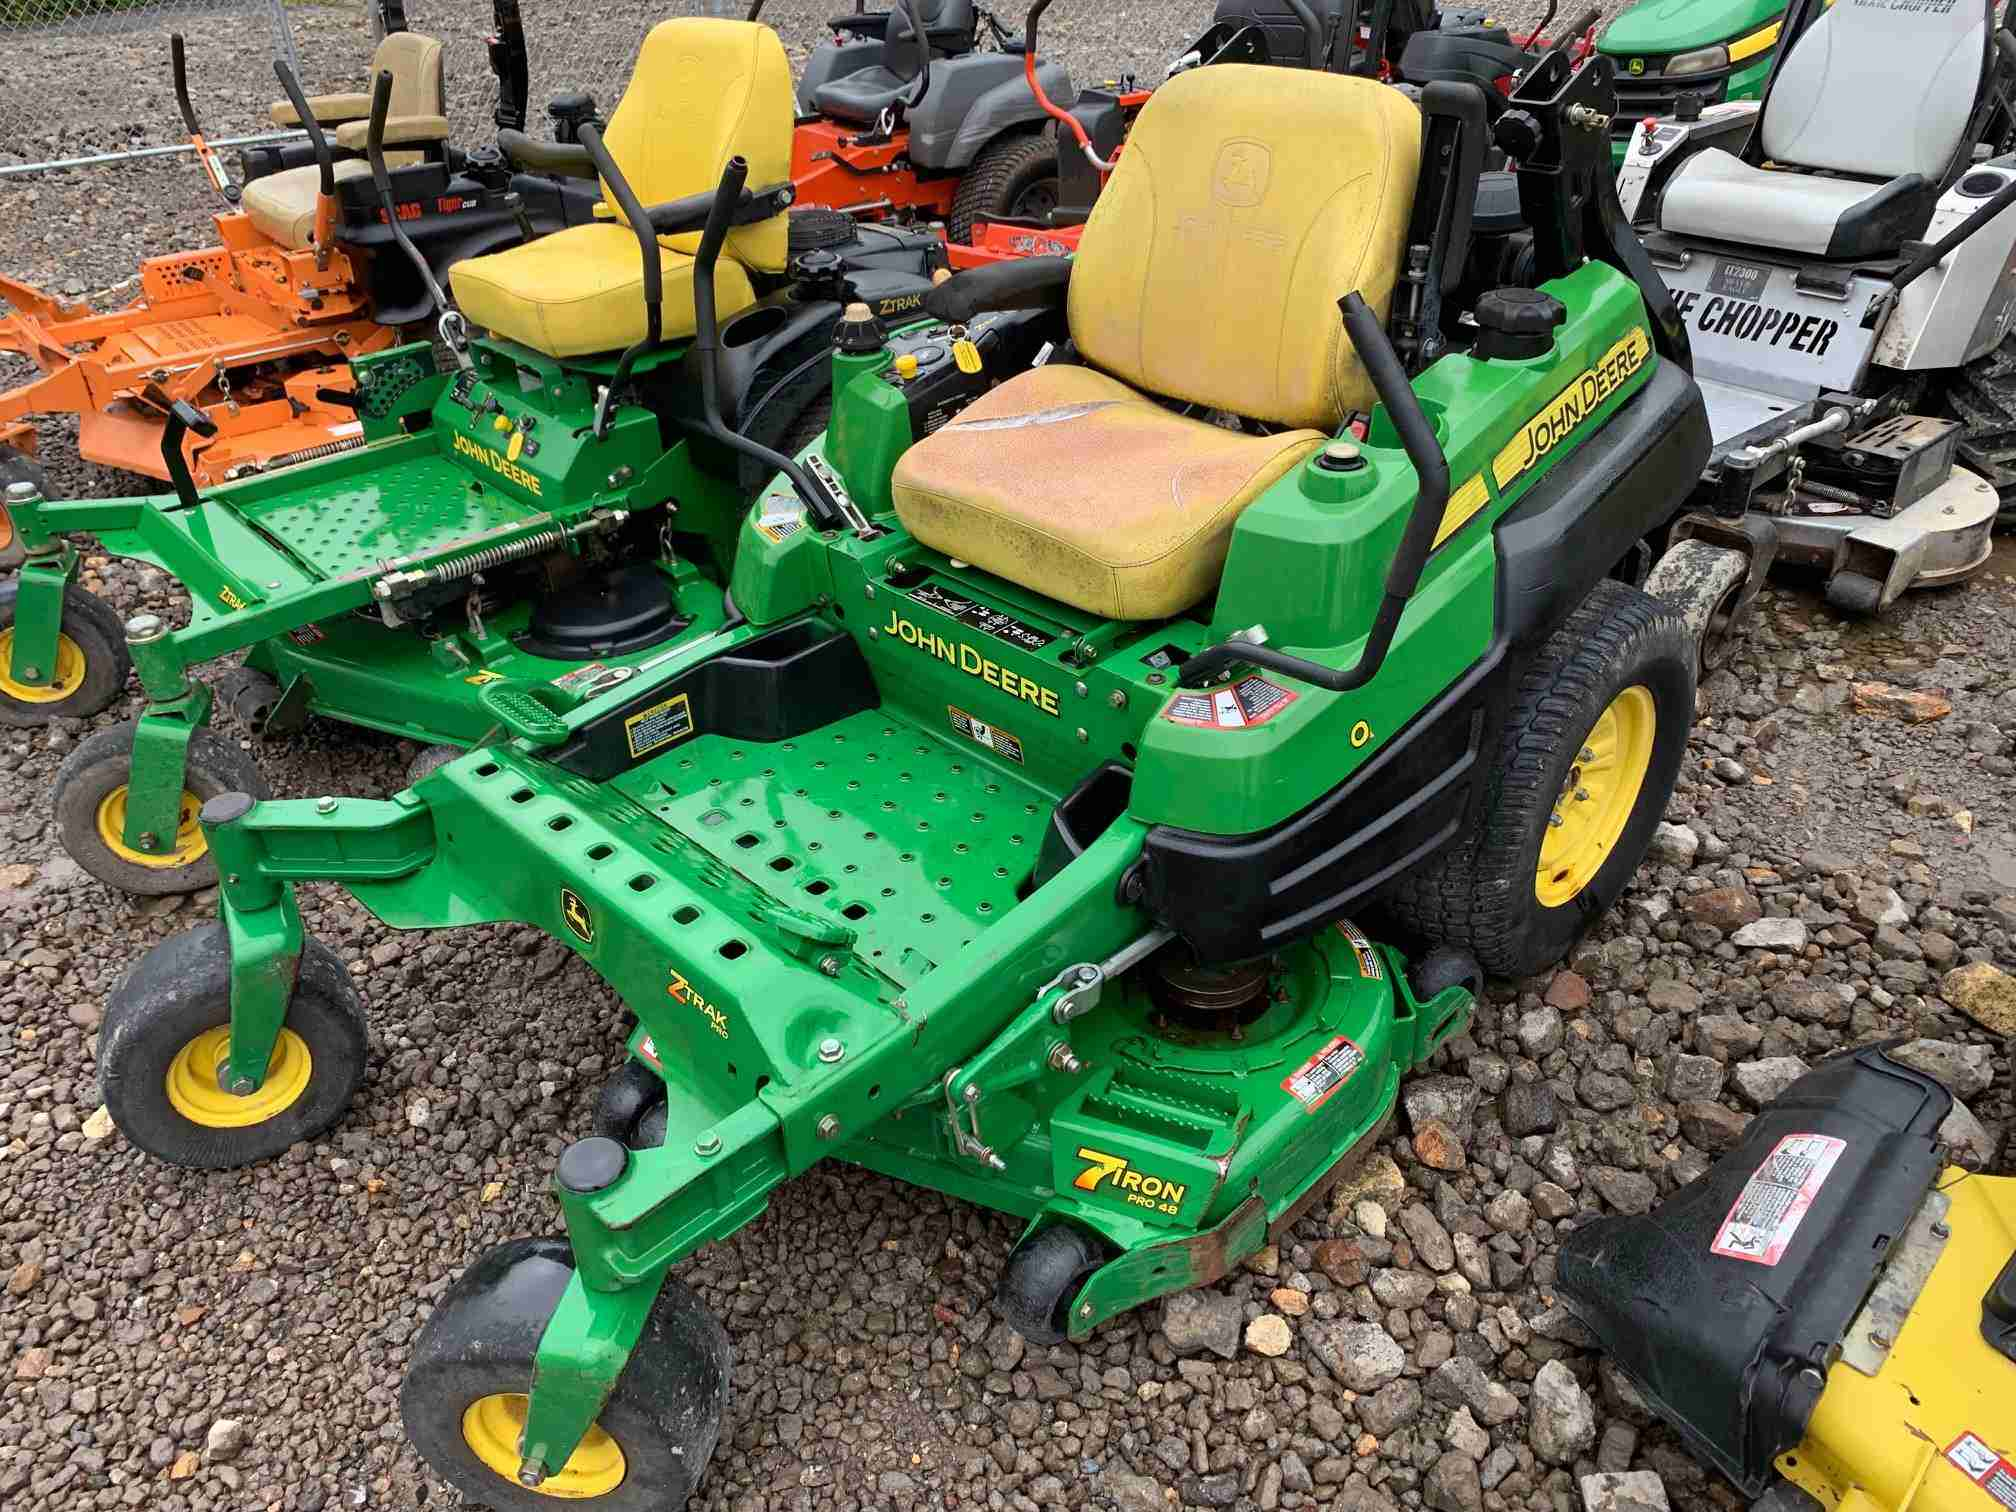 48IN JOHN DEERE Z810A COMMERCIAL ZERO TURN MOWER WITH 21HP KAWASAKI